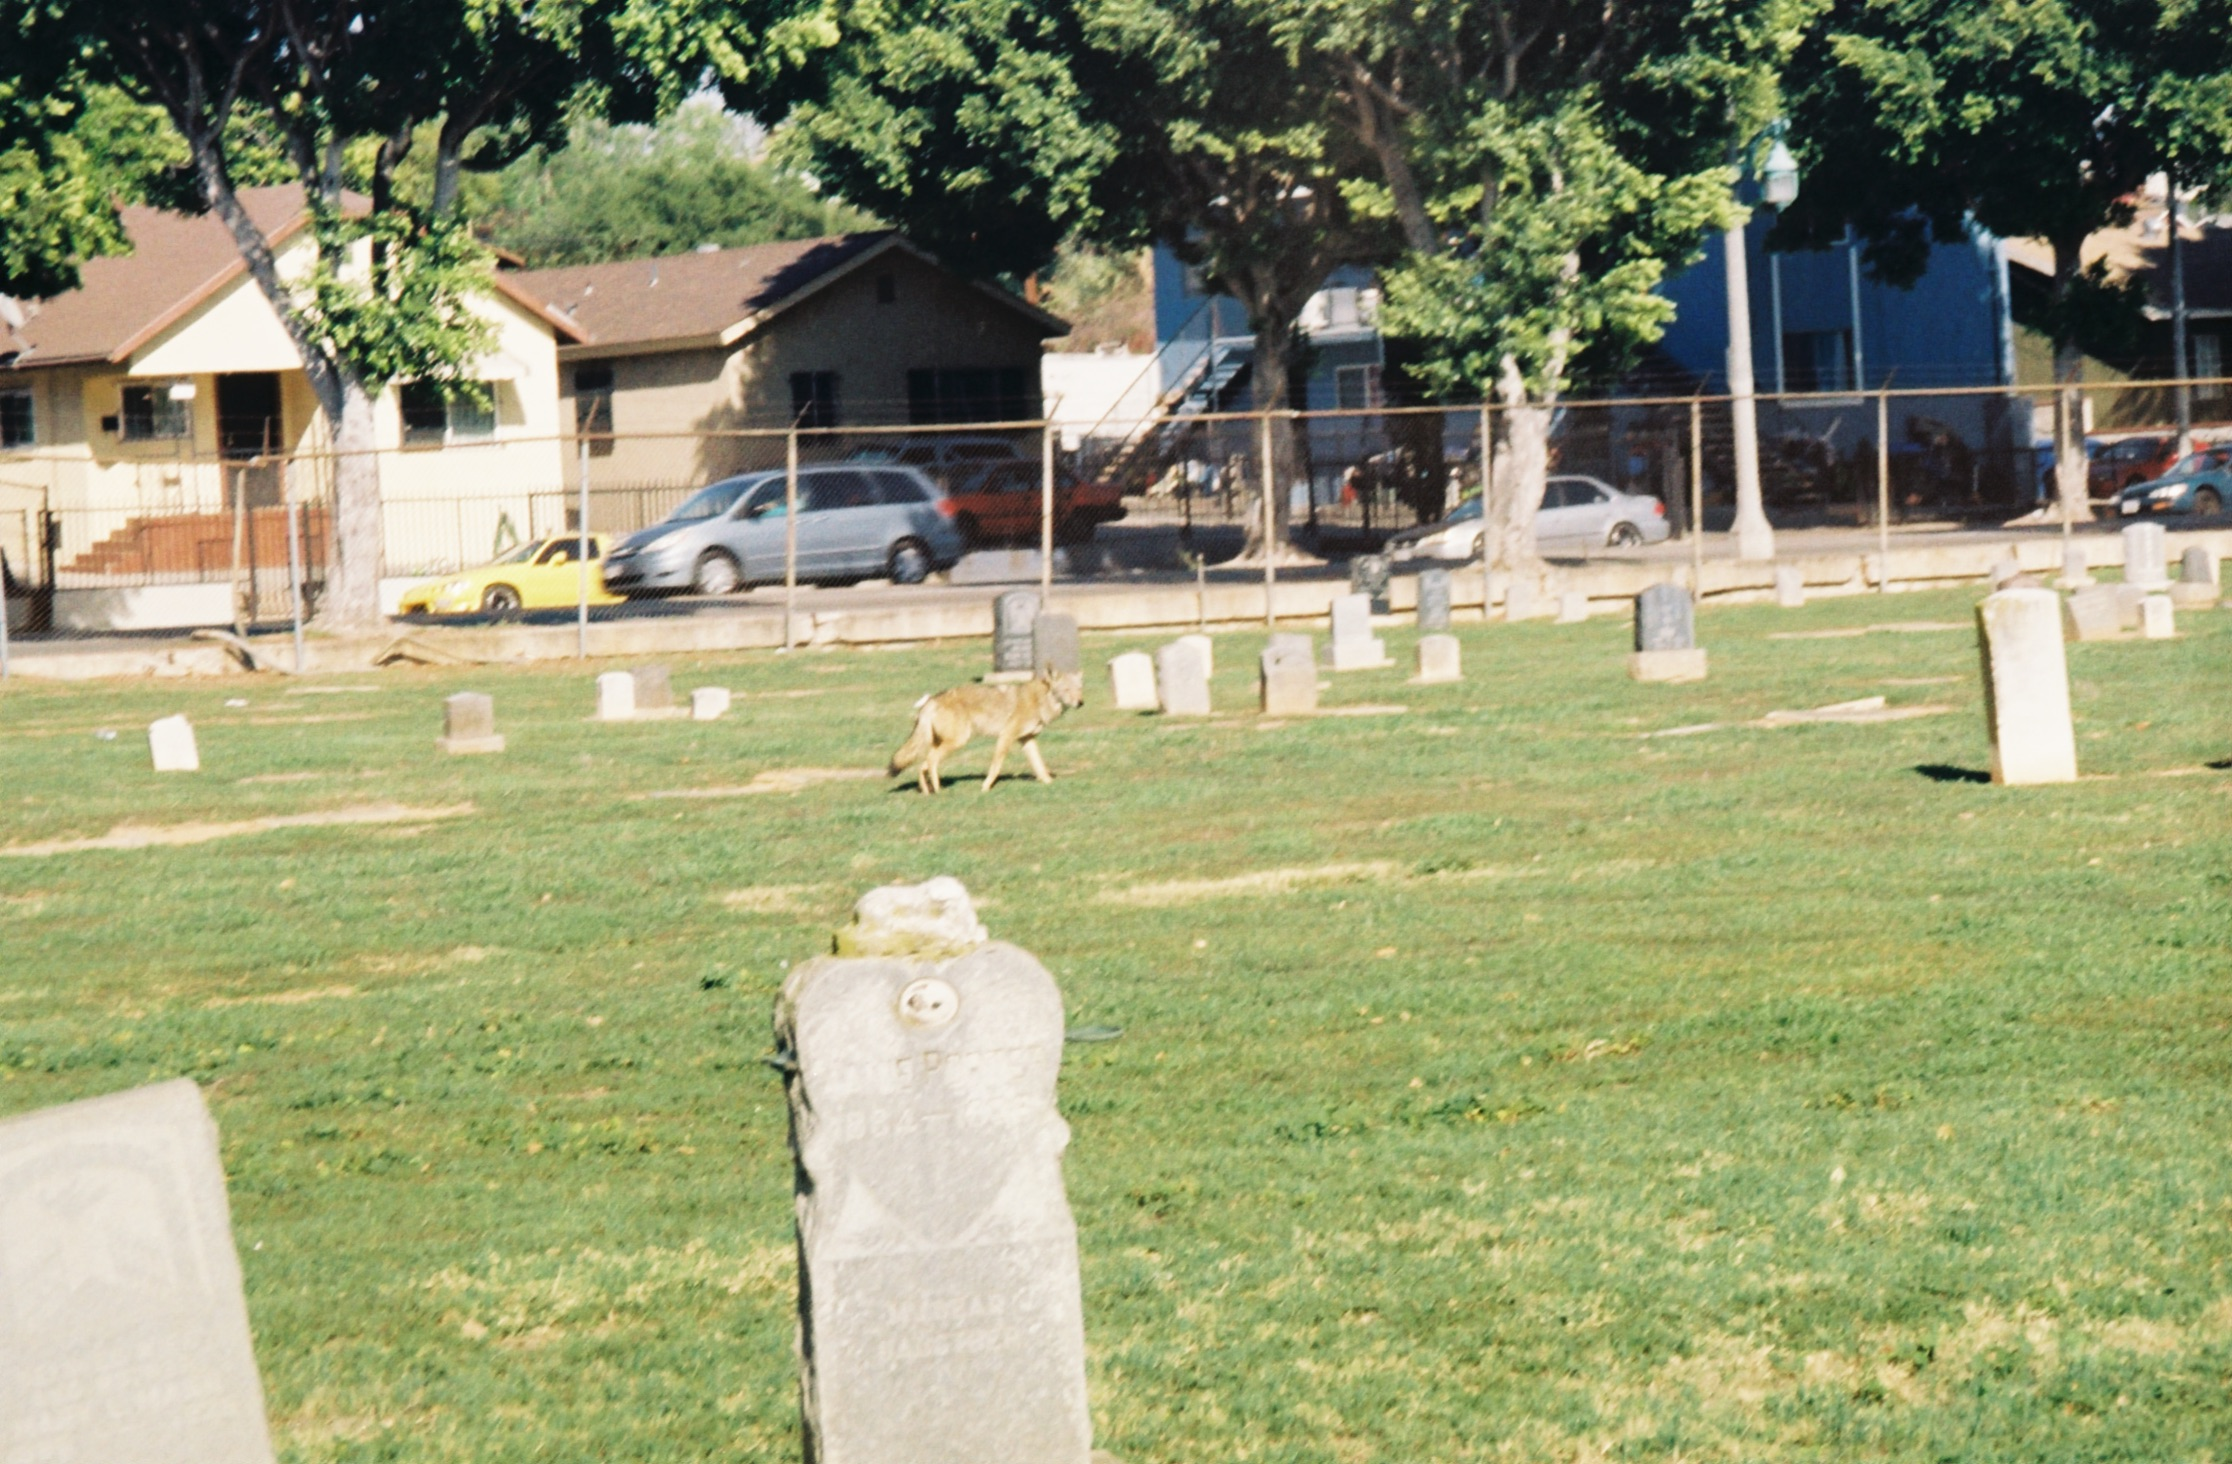 Since the cemetery is surrounded on all sides by busy streets and a flight path is directly overhead, the area where the coyotes dwell is enveloped by a cocoon of white noise, making close encounters all the more possible.